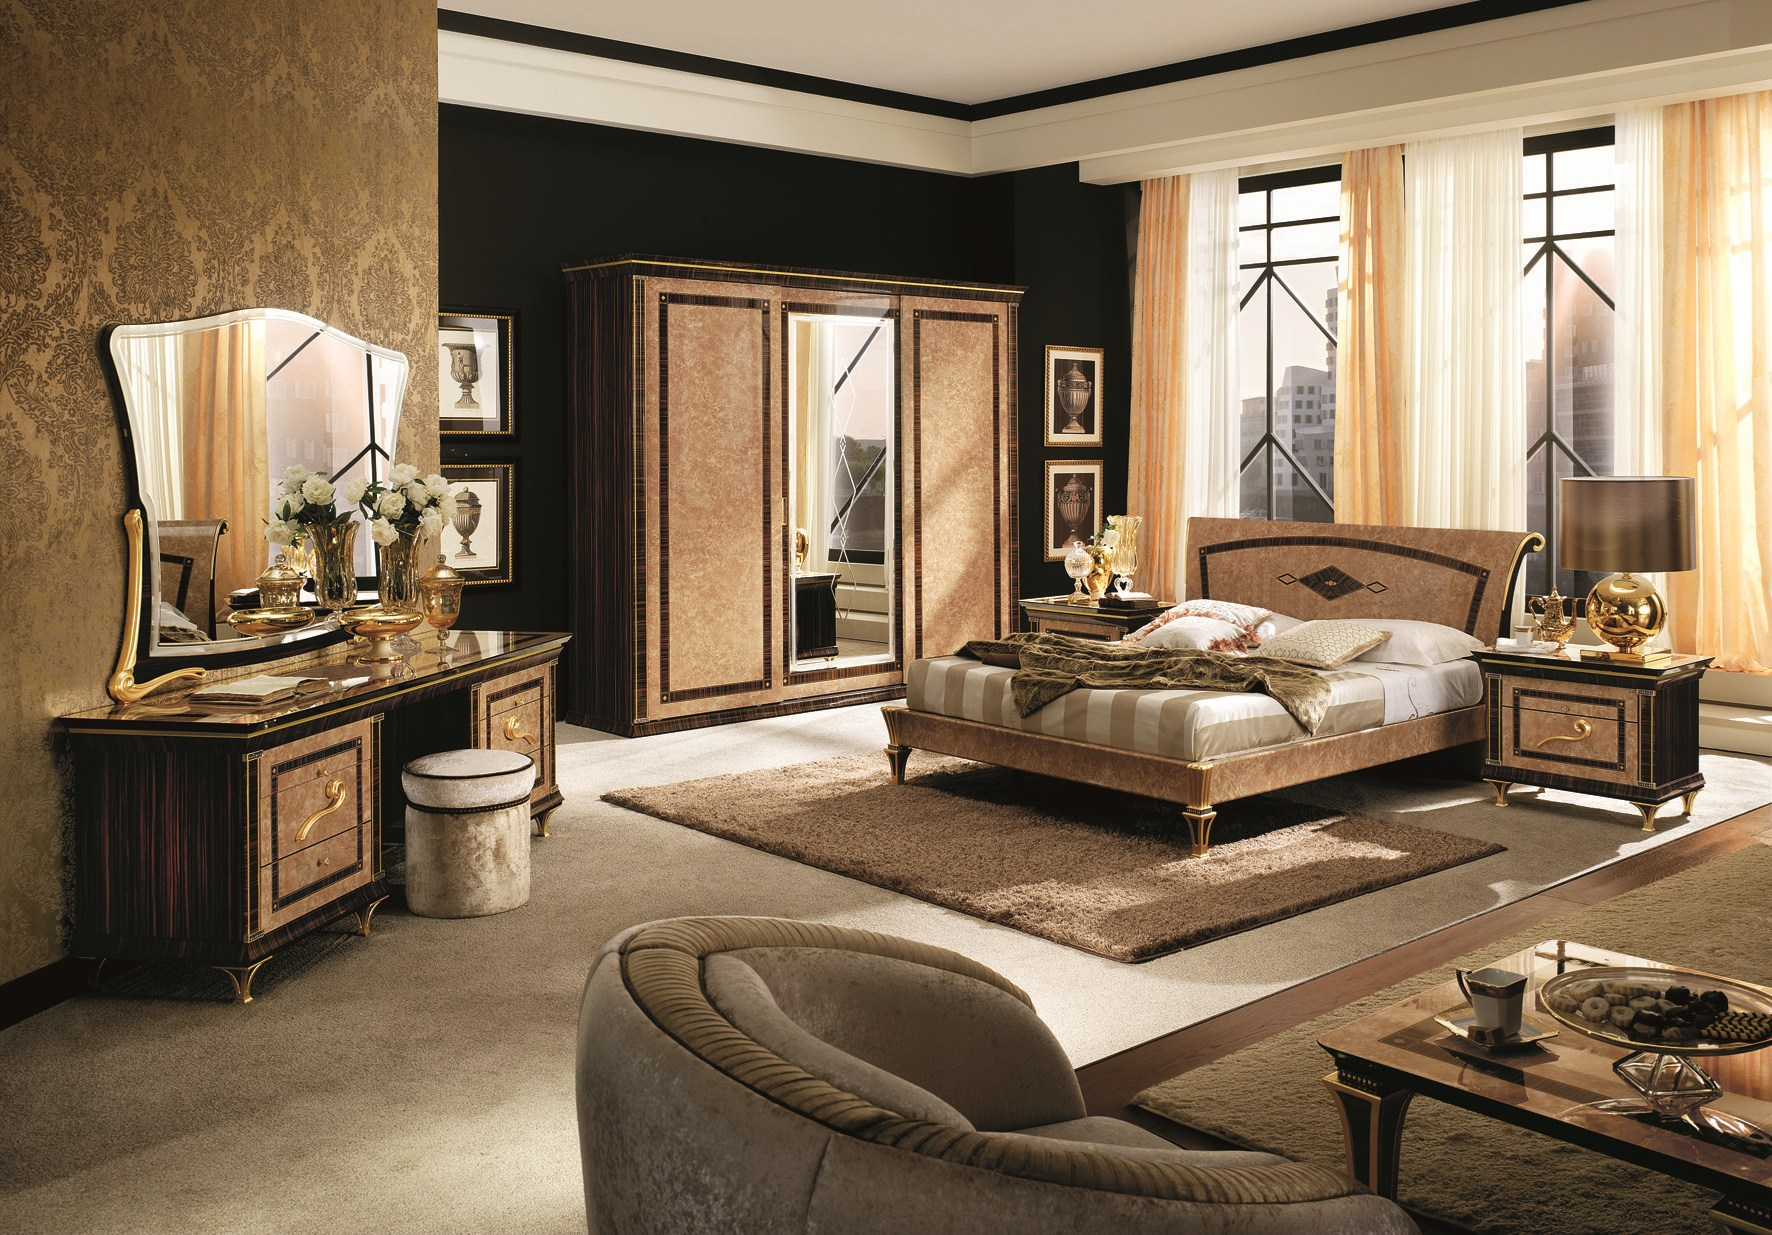 rossini wardrobe by arredoclassic. Black Bedroom Furniture Sets. Home Design Ideas